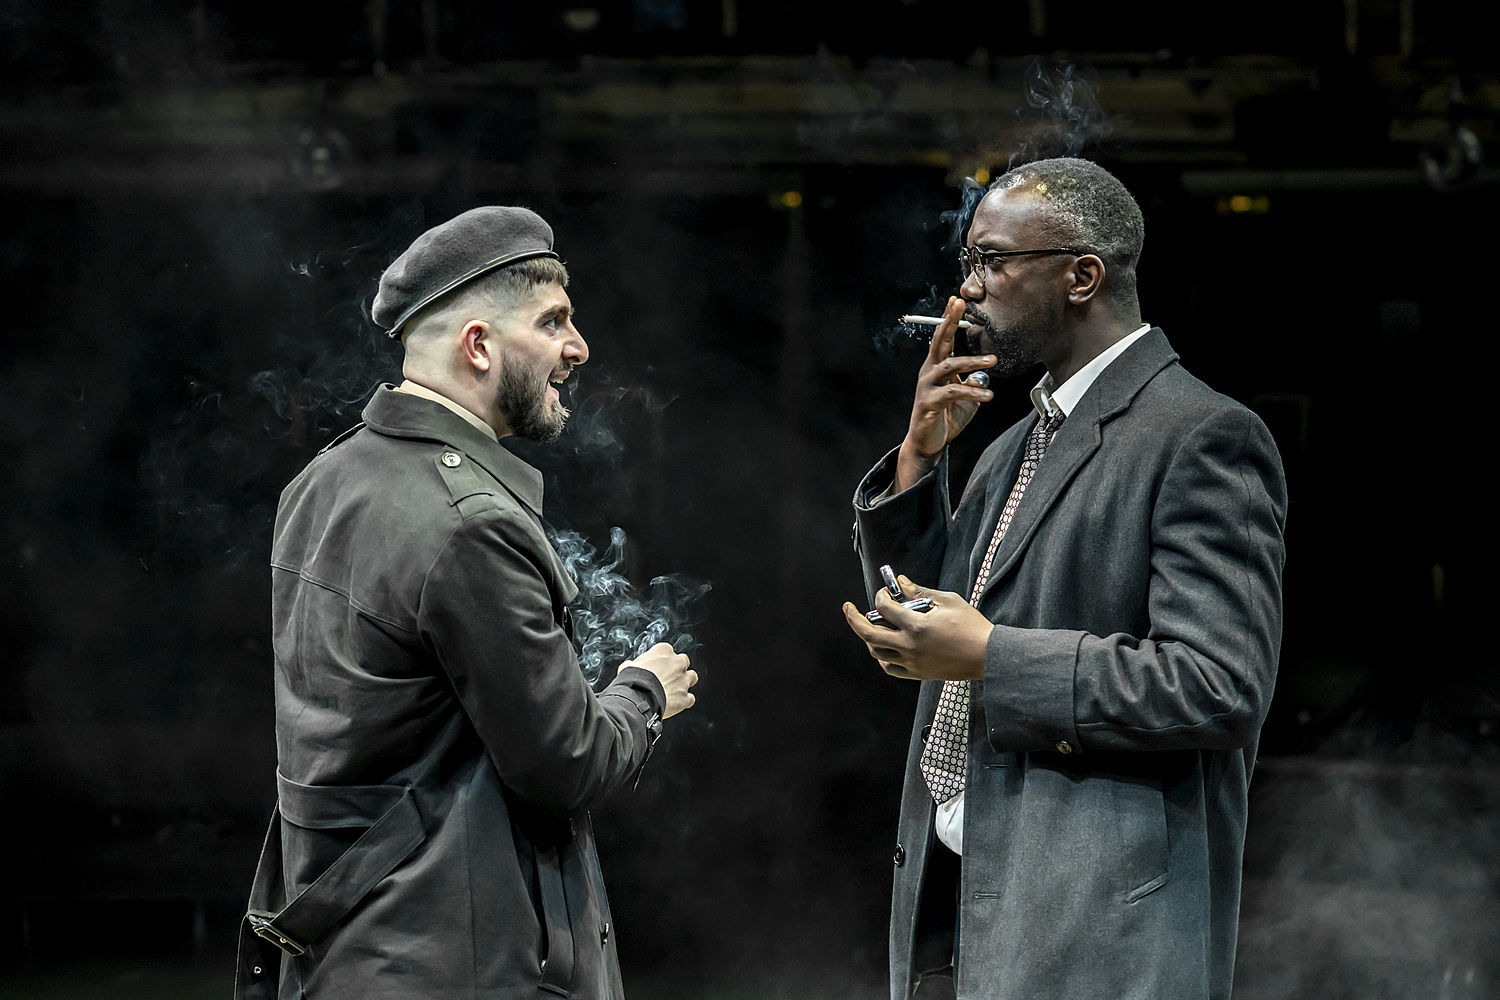 MACBETH - Manchester Royal Exchange